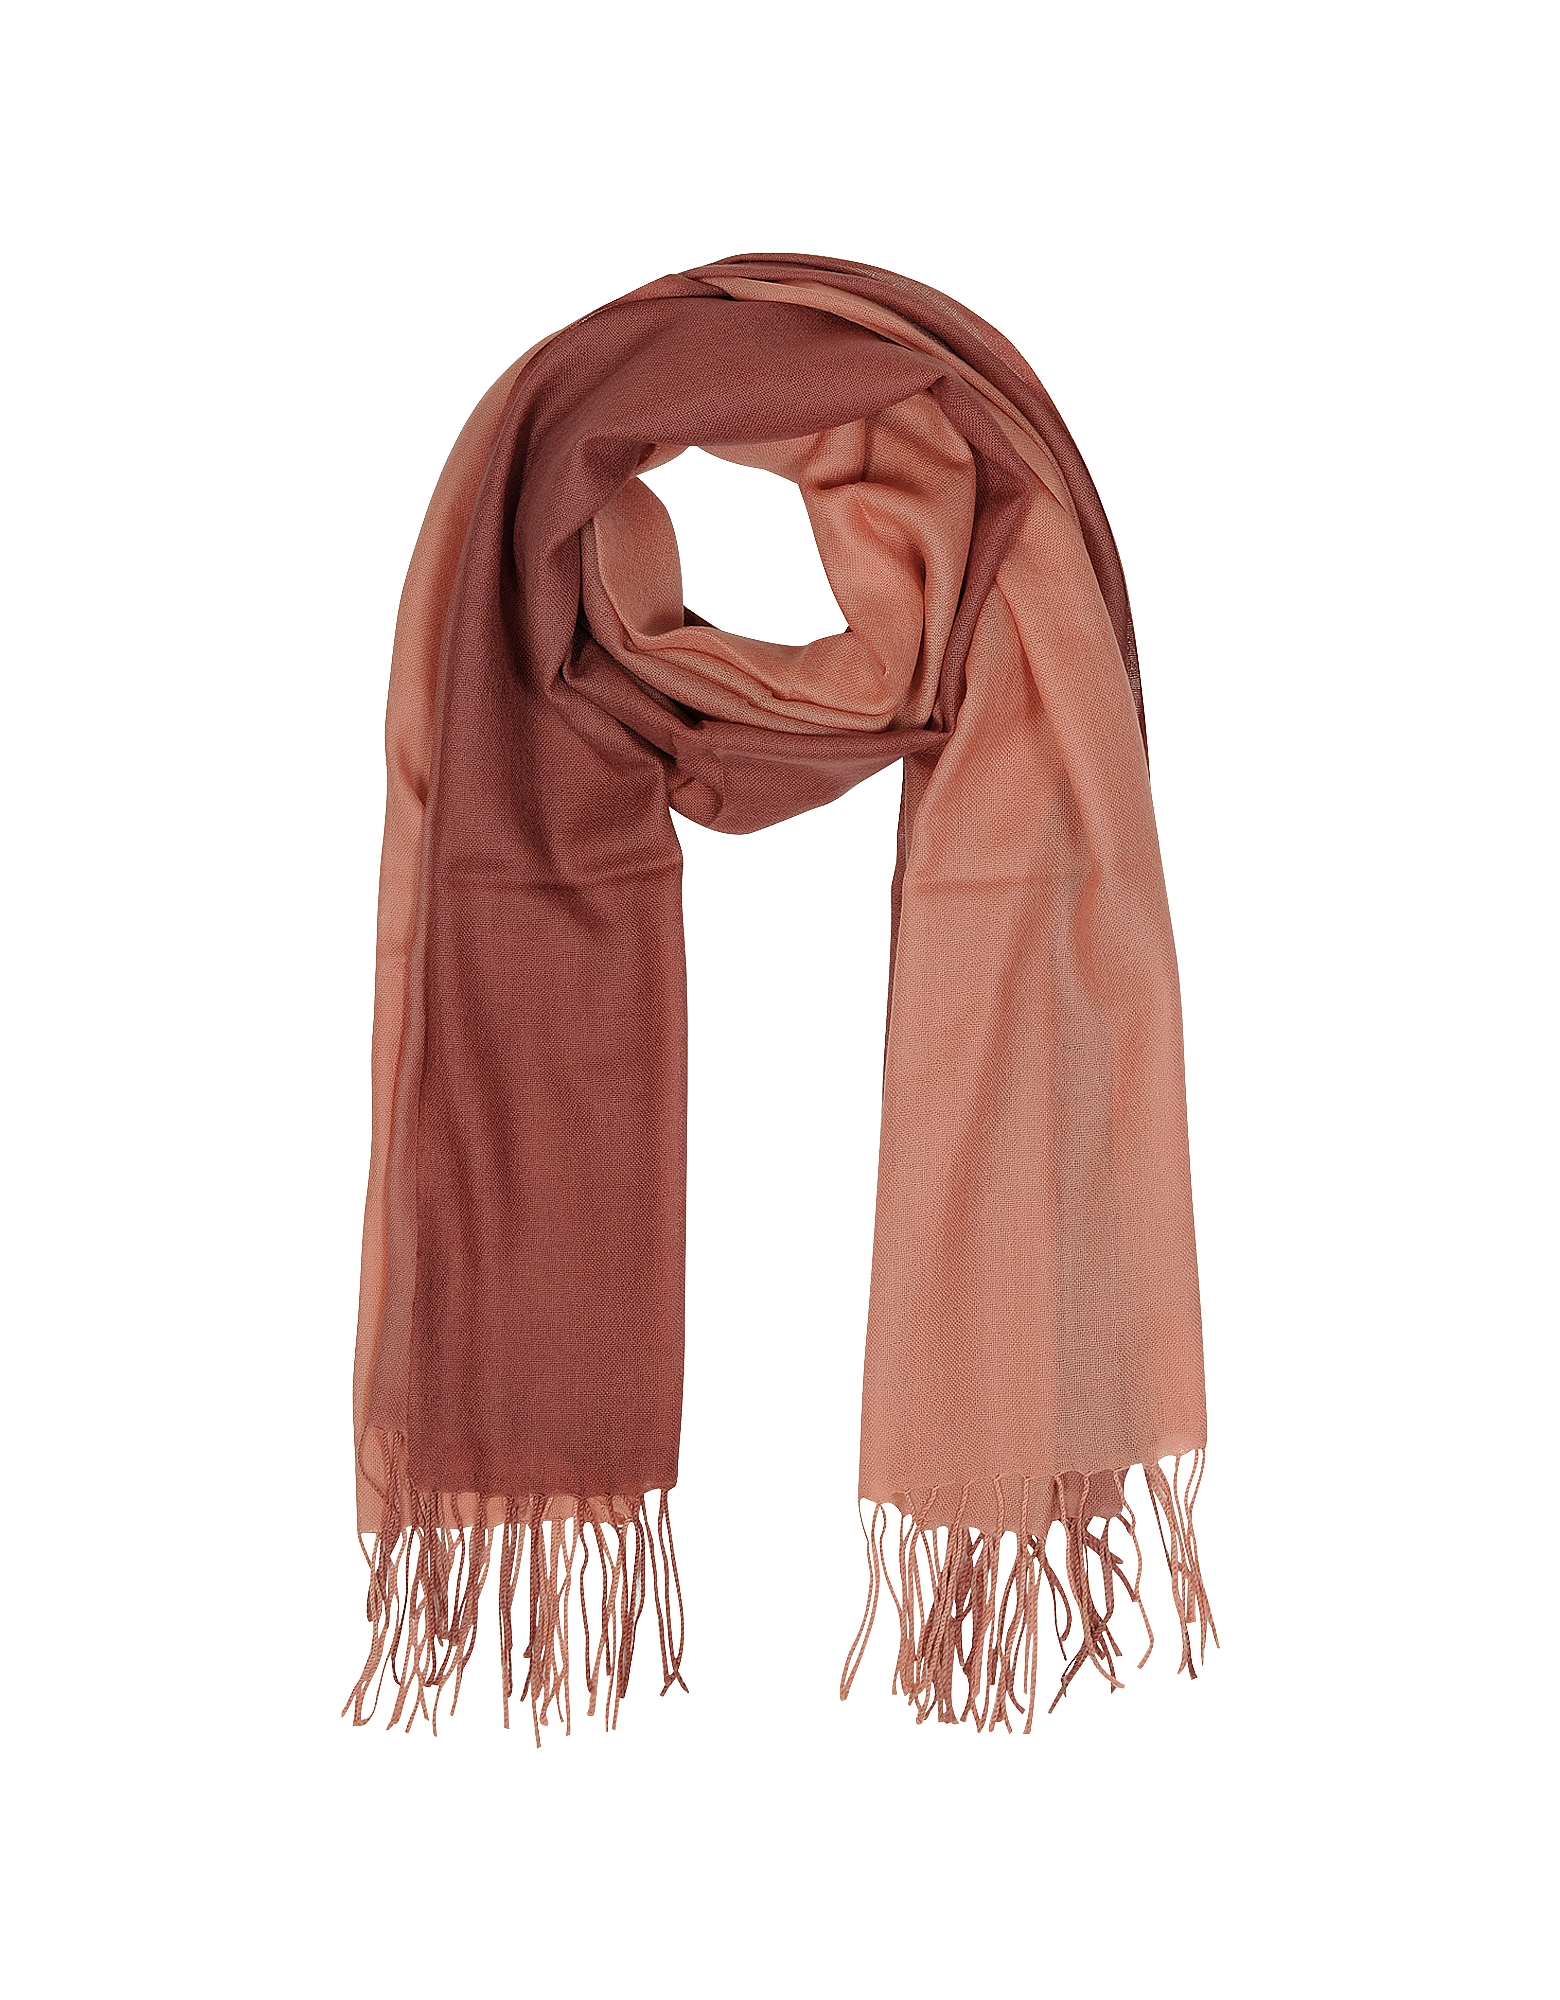 Mila Schon Long Scarves, Gradient Brick/Coral Wool and Cashmere Fringed Stole